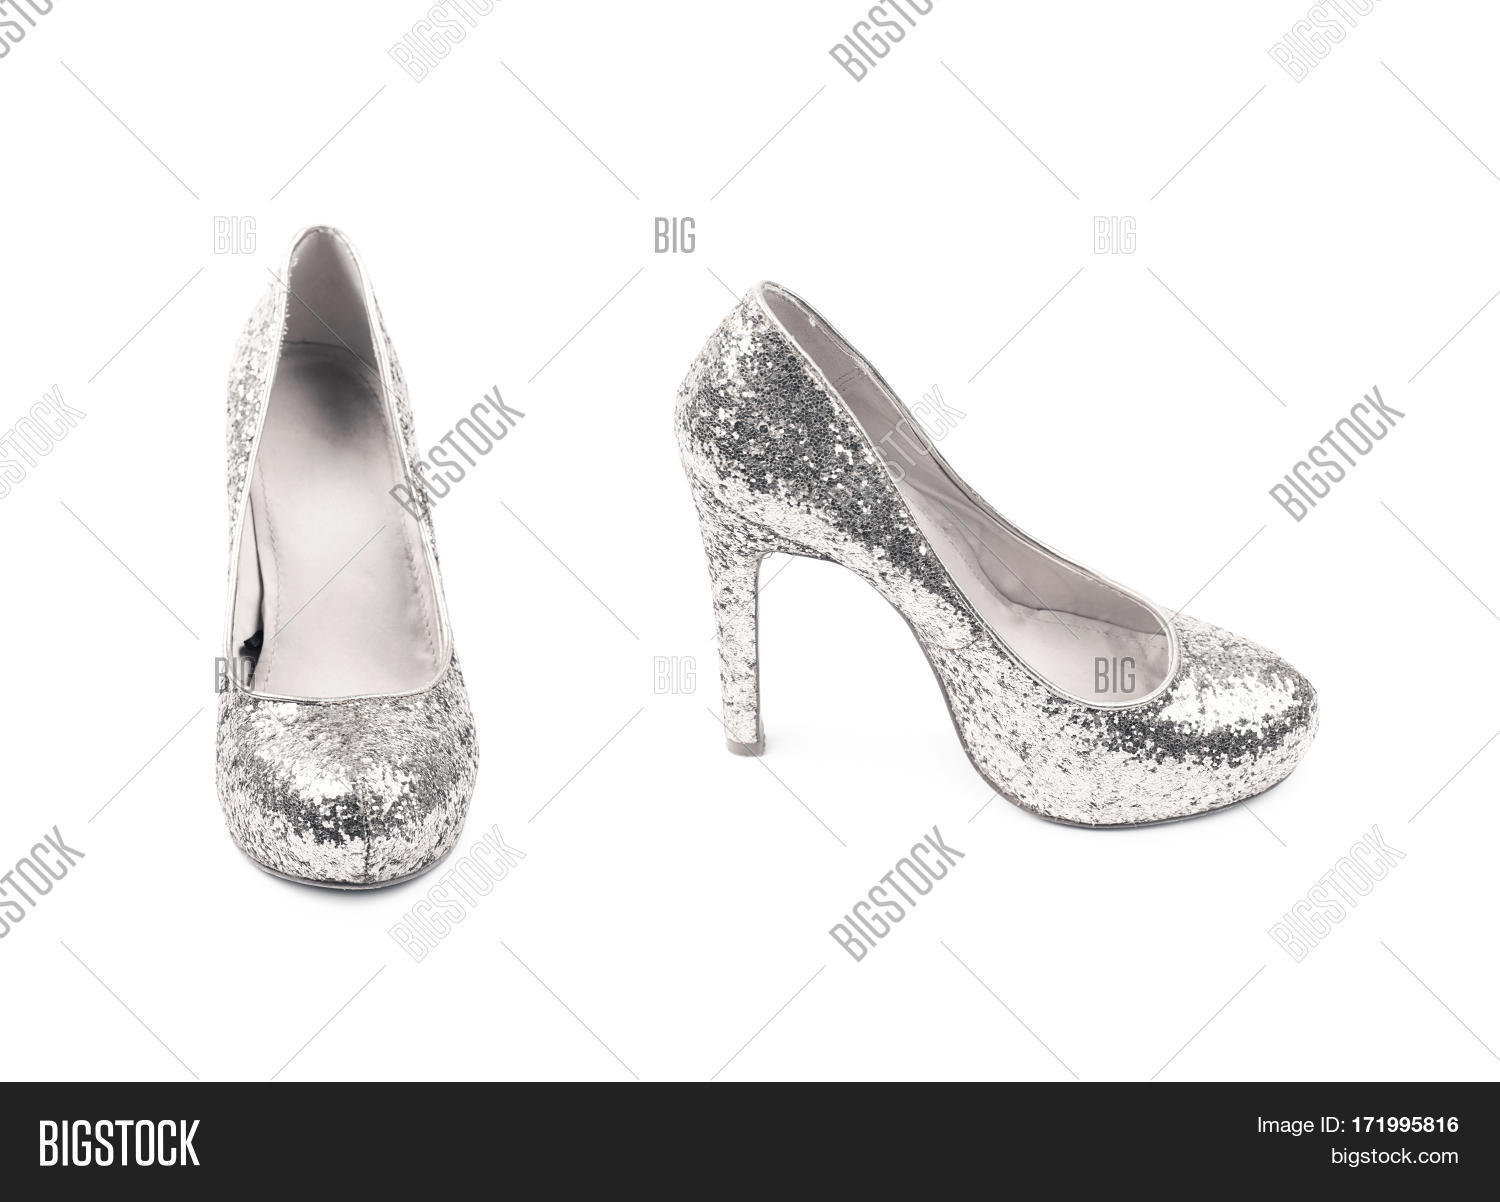 5c89fa4f946 Shining silver high-heeled footwear shoe isolated over the white background